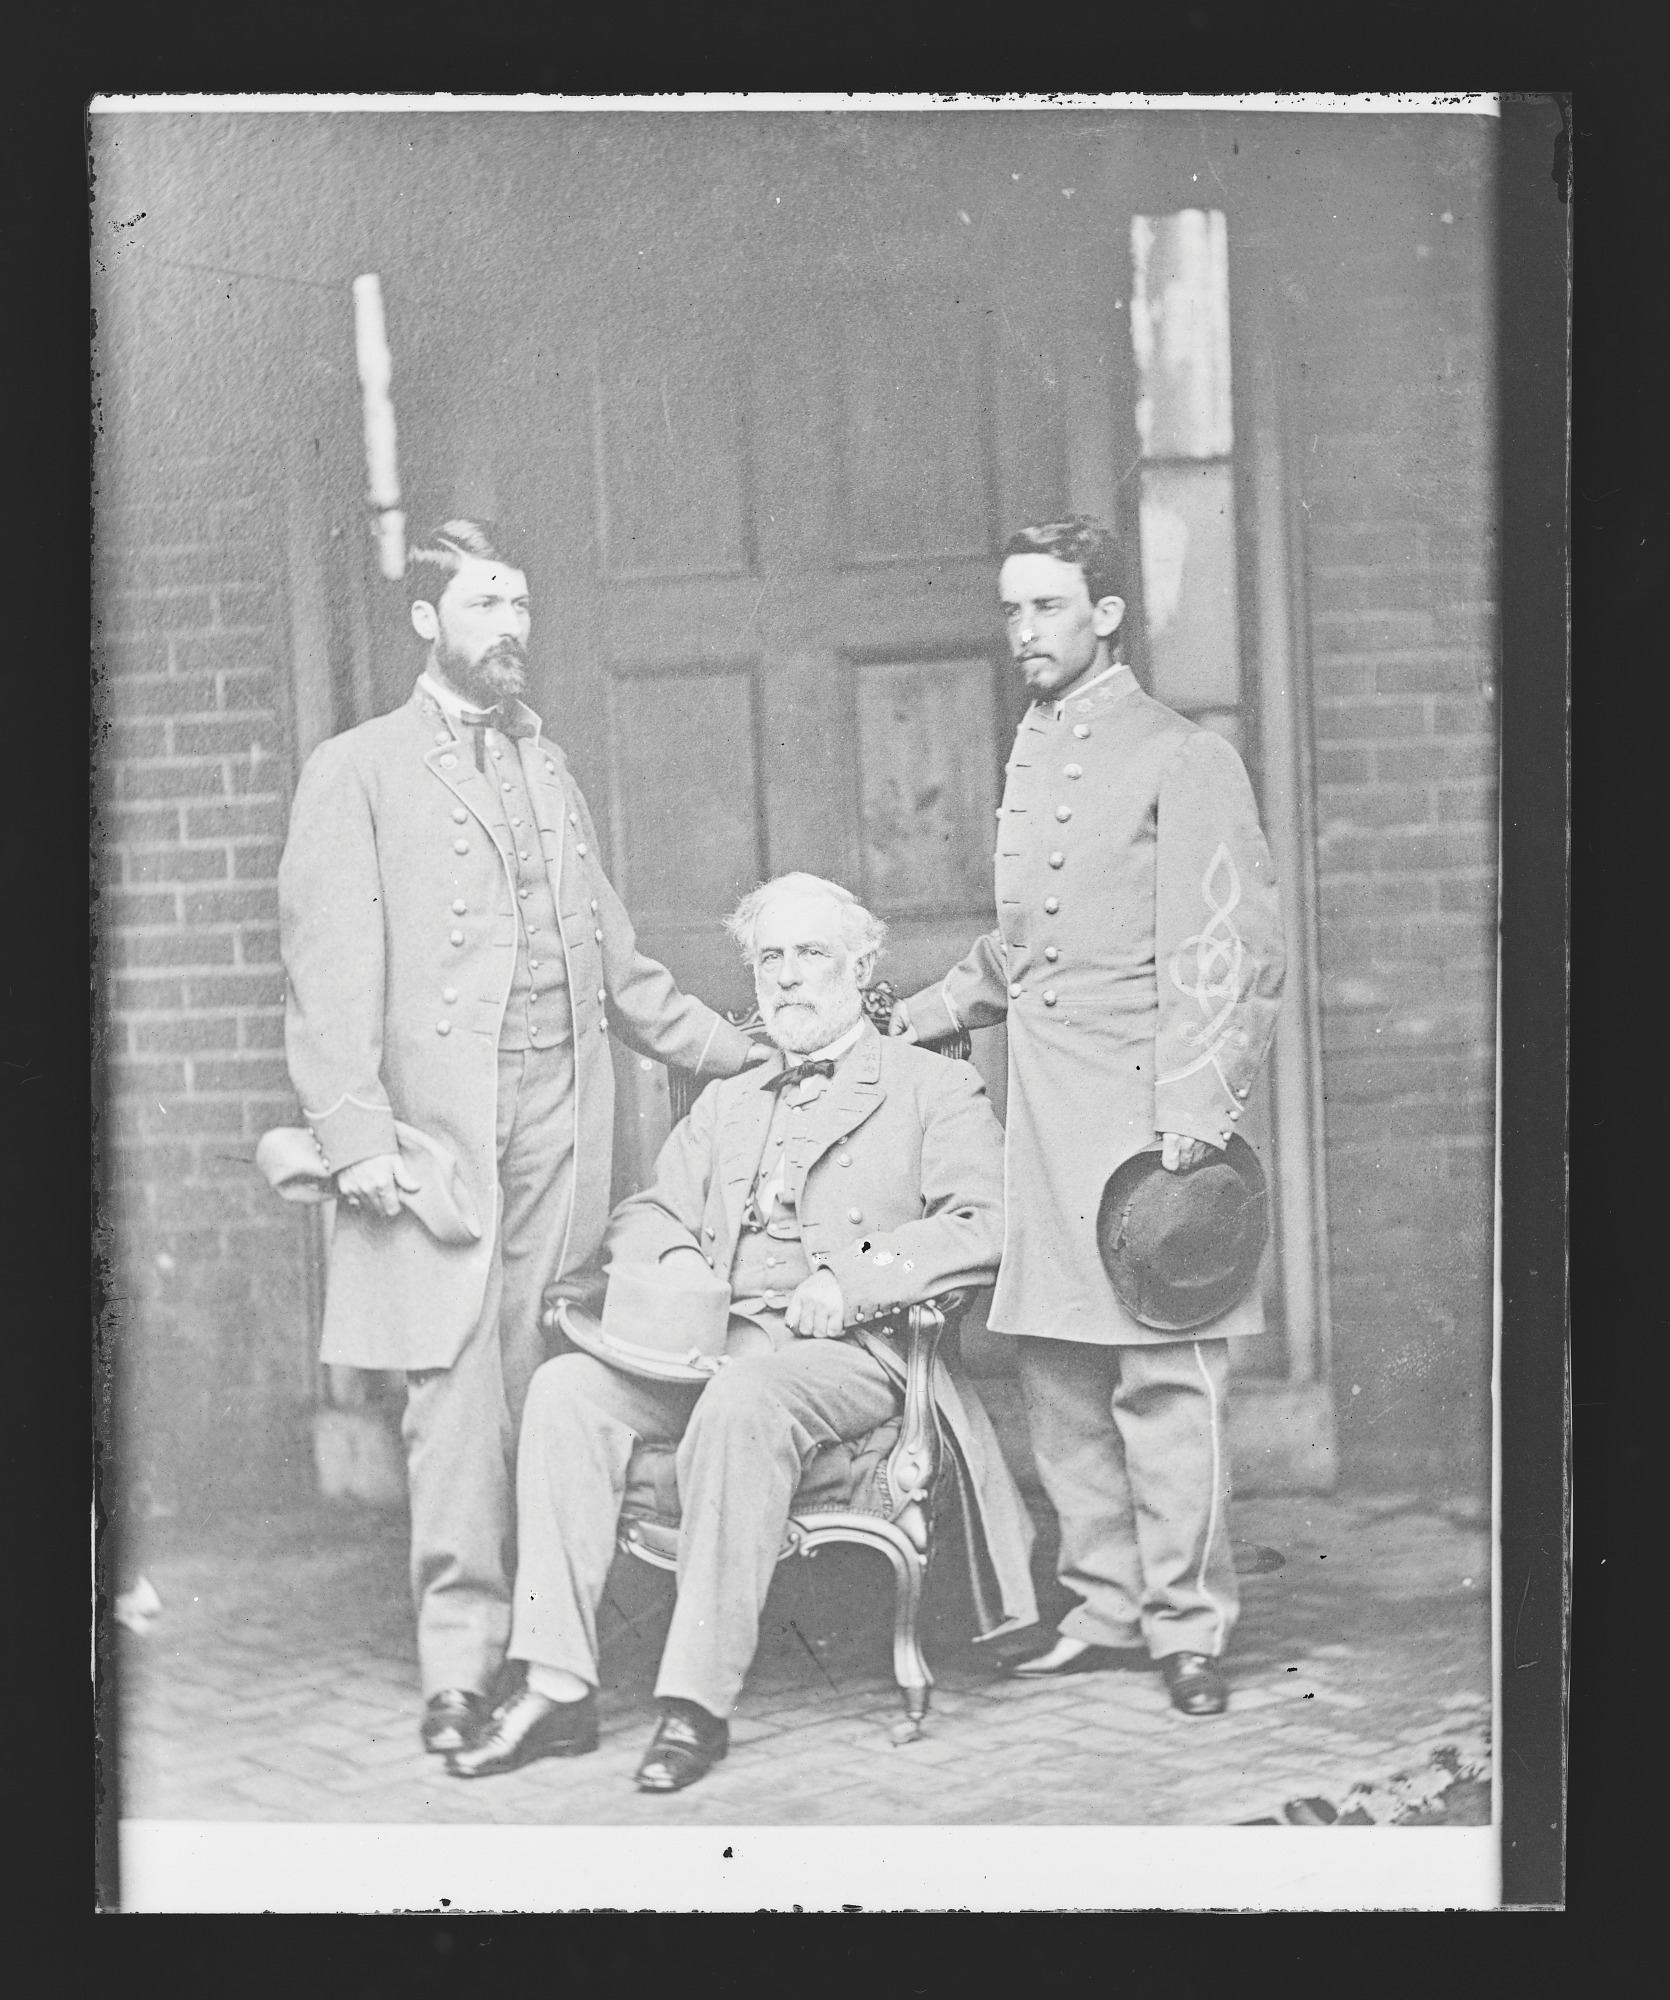 Robert E. Lee and Staff [G.W.C. Lee and Walter H. Taylor]